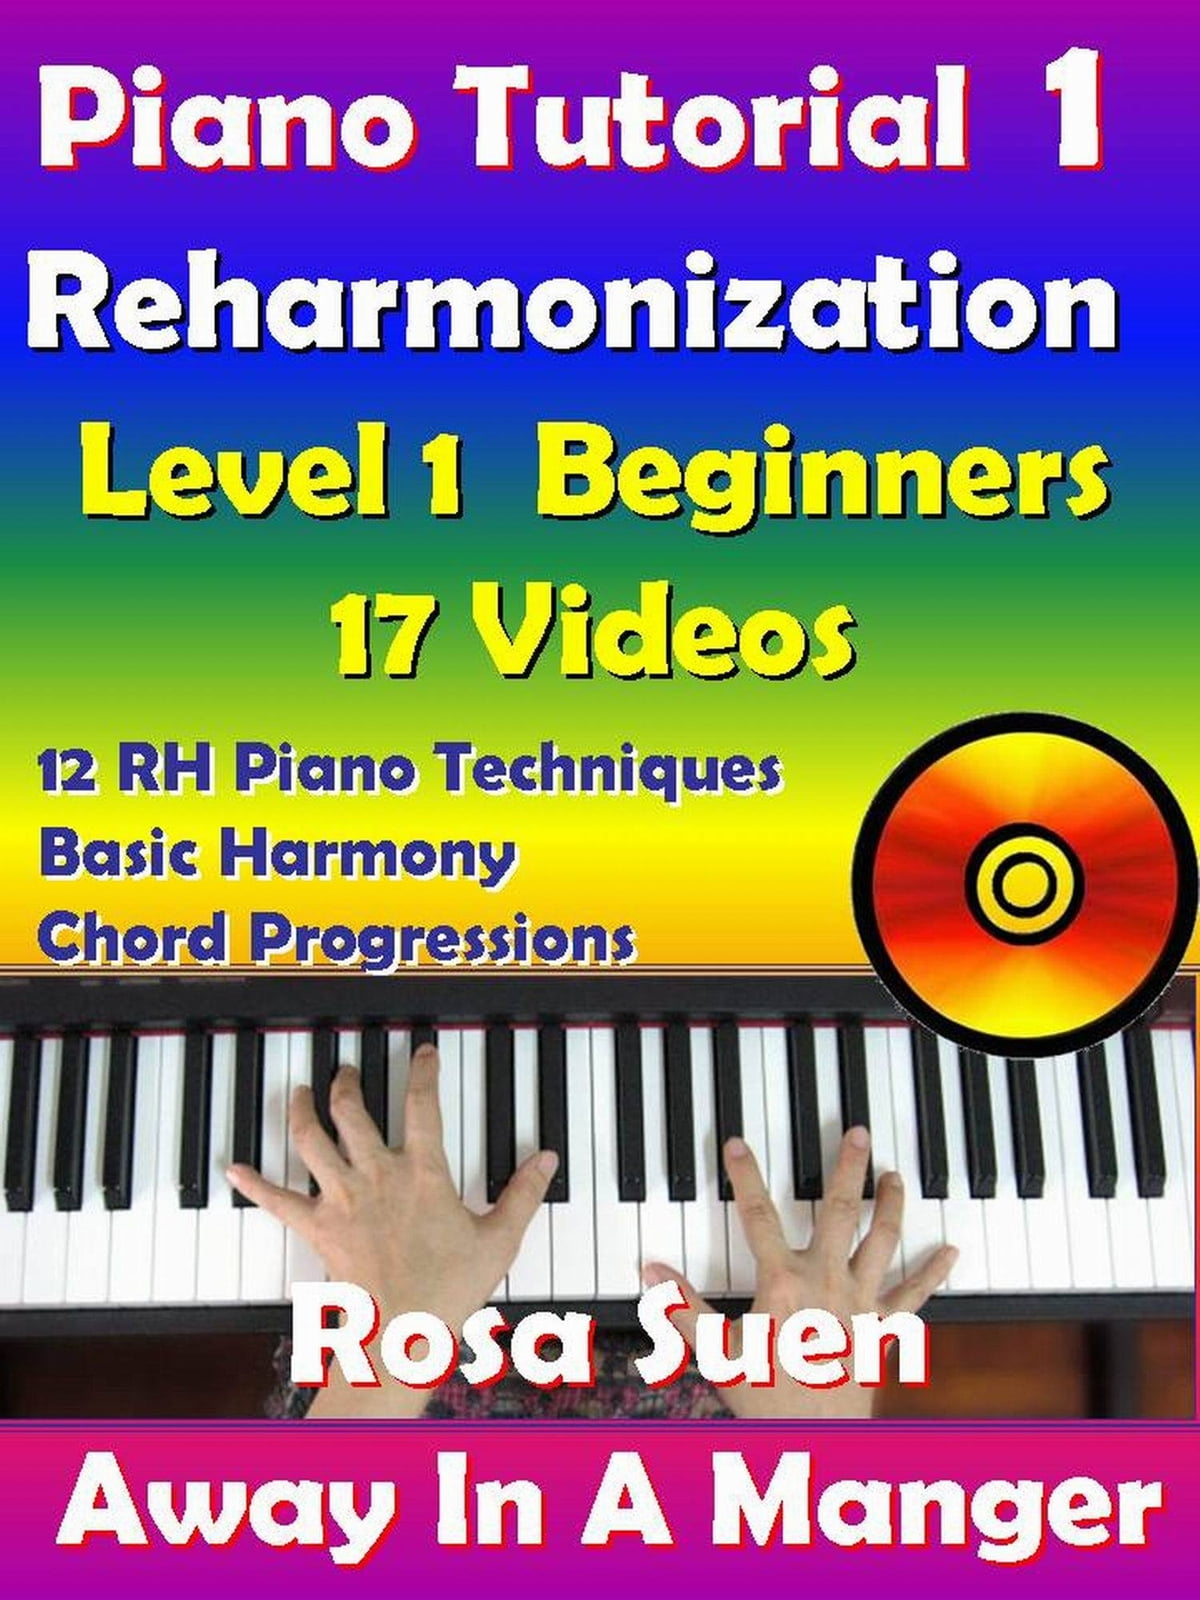 Rosas Adult Piano Lessons Reharmonization Level 1 Beginners Away